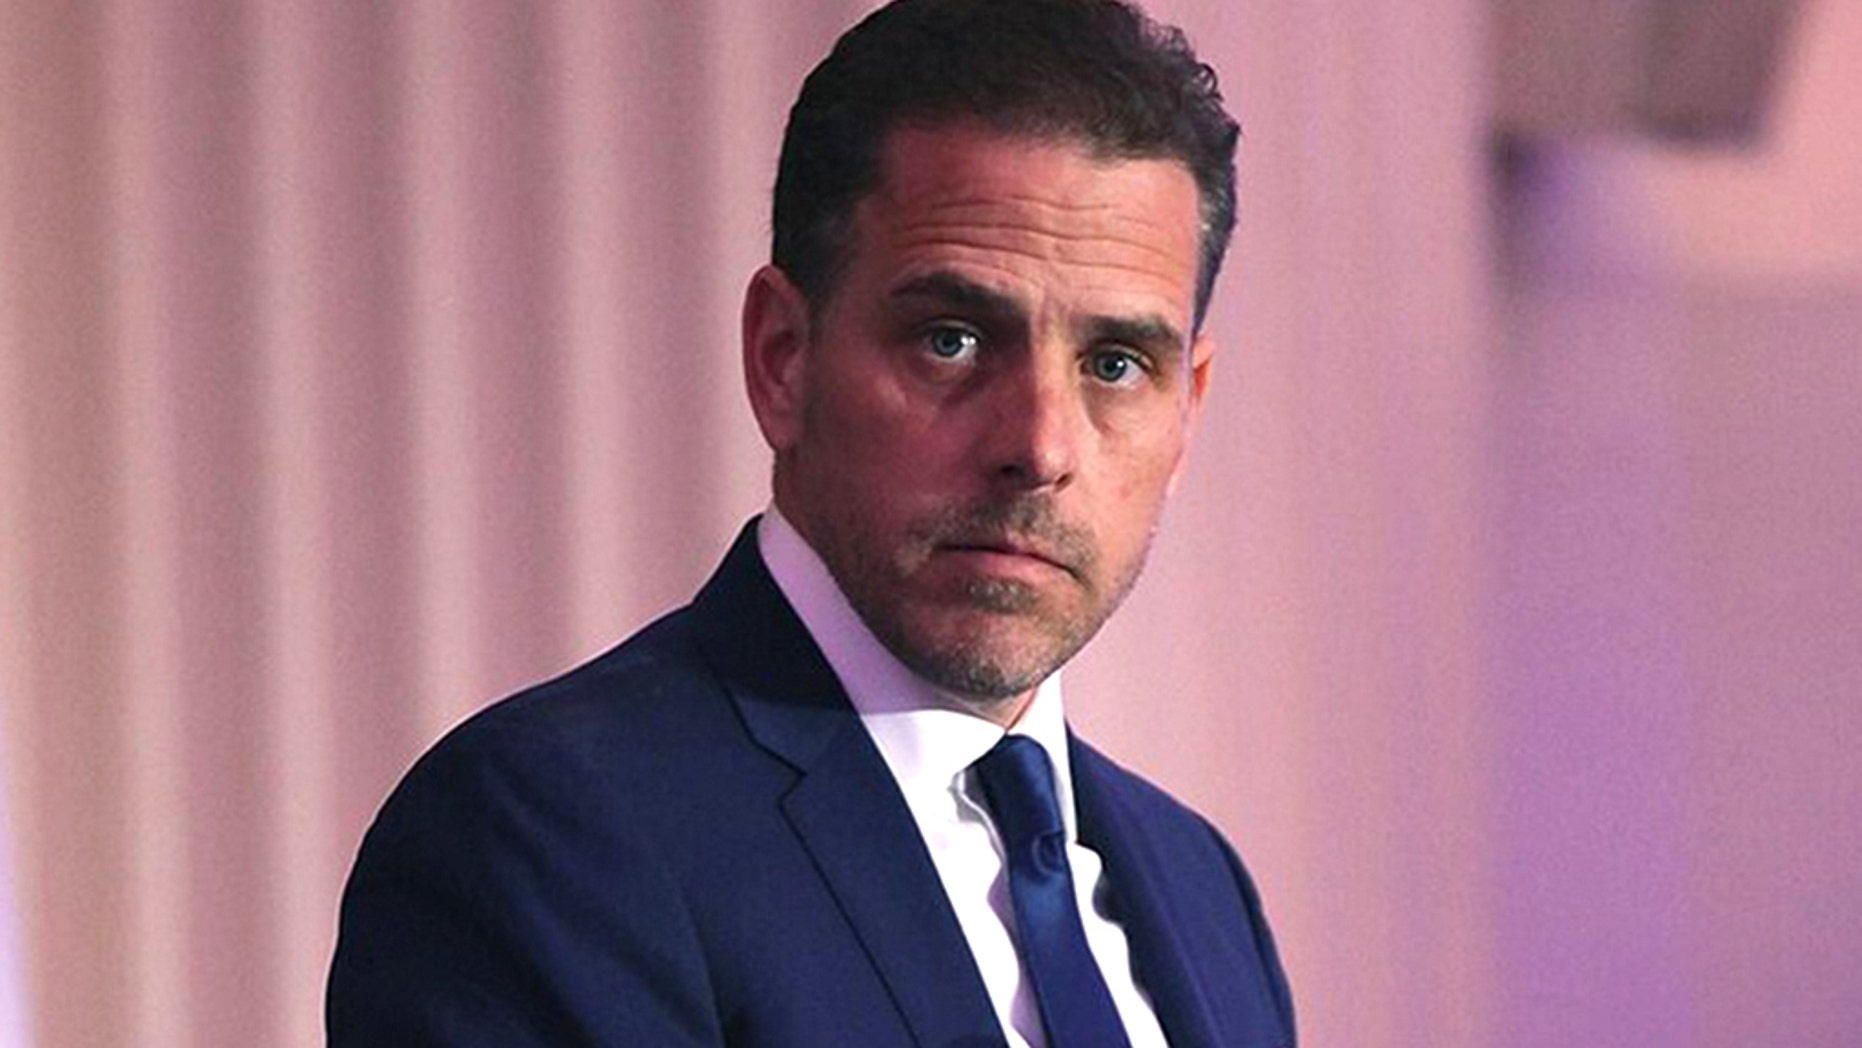 Special counsel for Hunter Biden case may be 'warranted,' some at DOJ say: sources